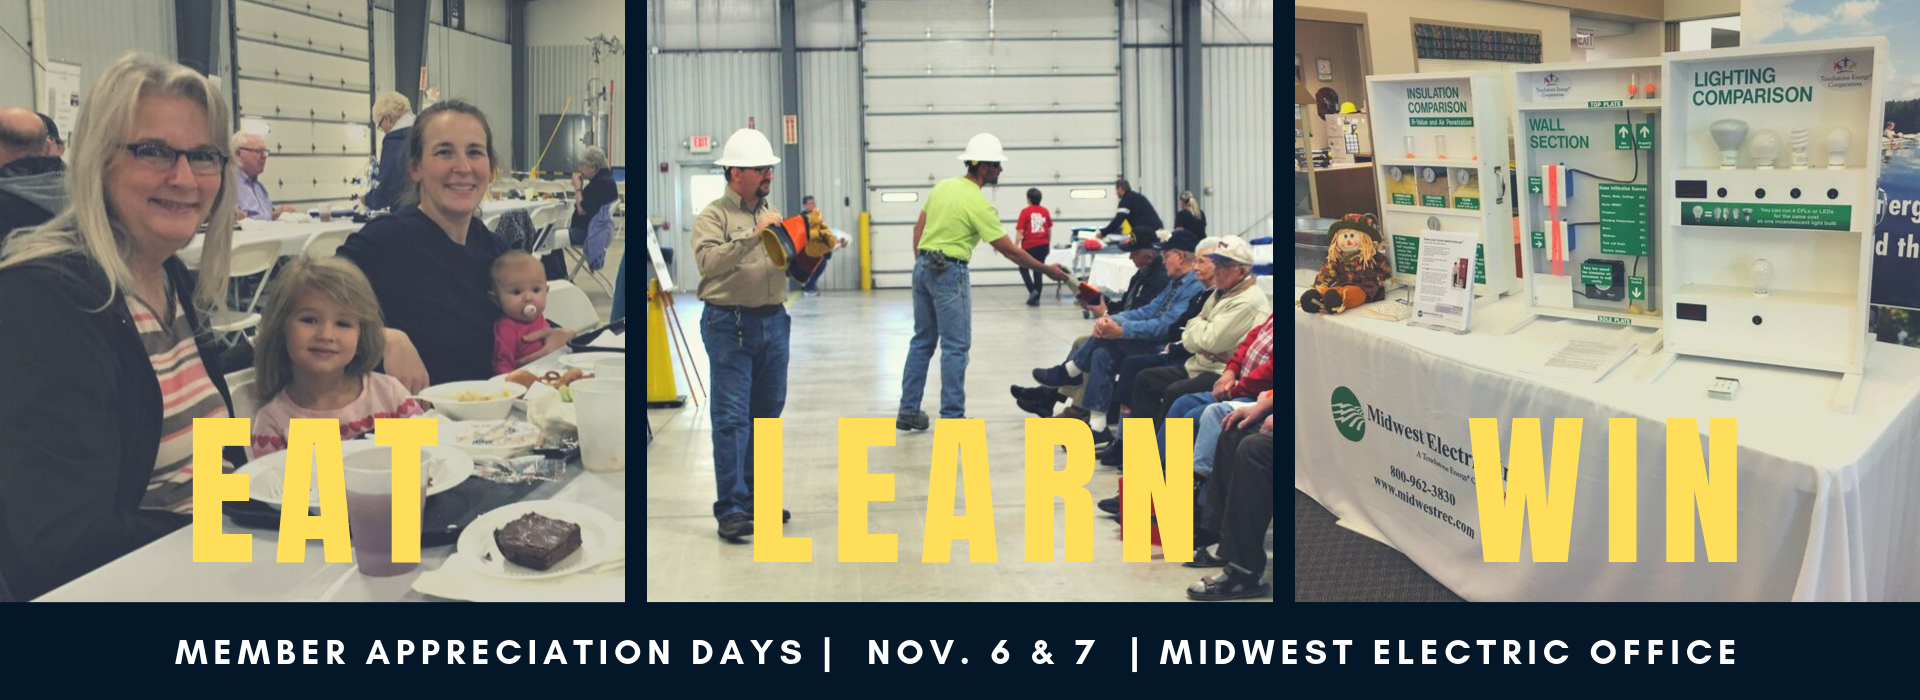 Eat, learn, and win $50 cash prizes at Midwest Electric's Member Appreciation Days on November 6 and 7th at our office!